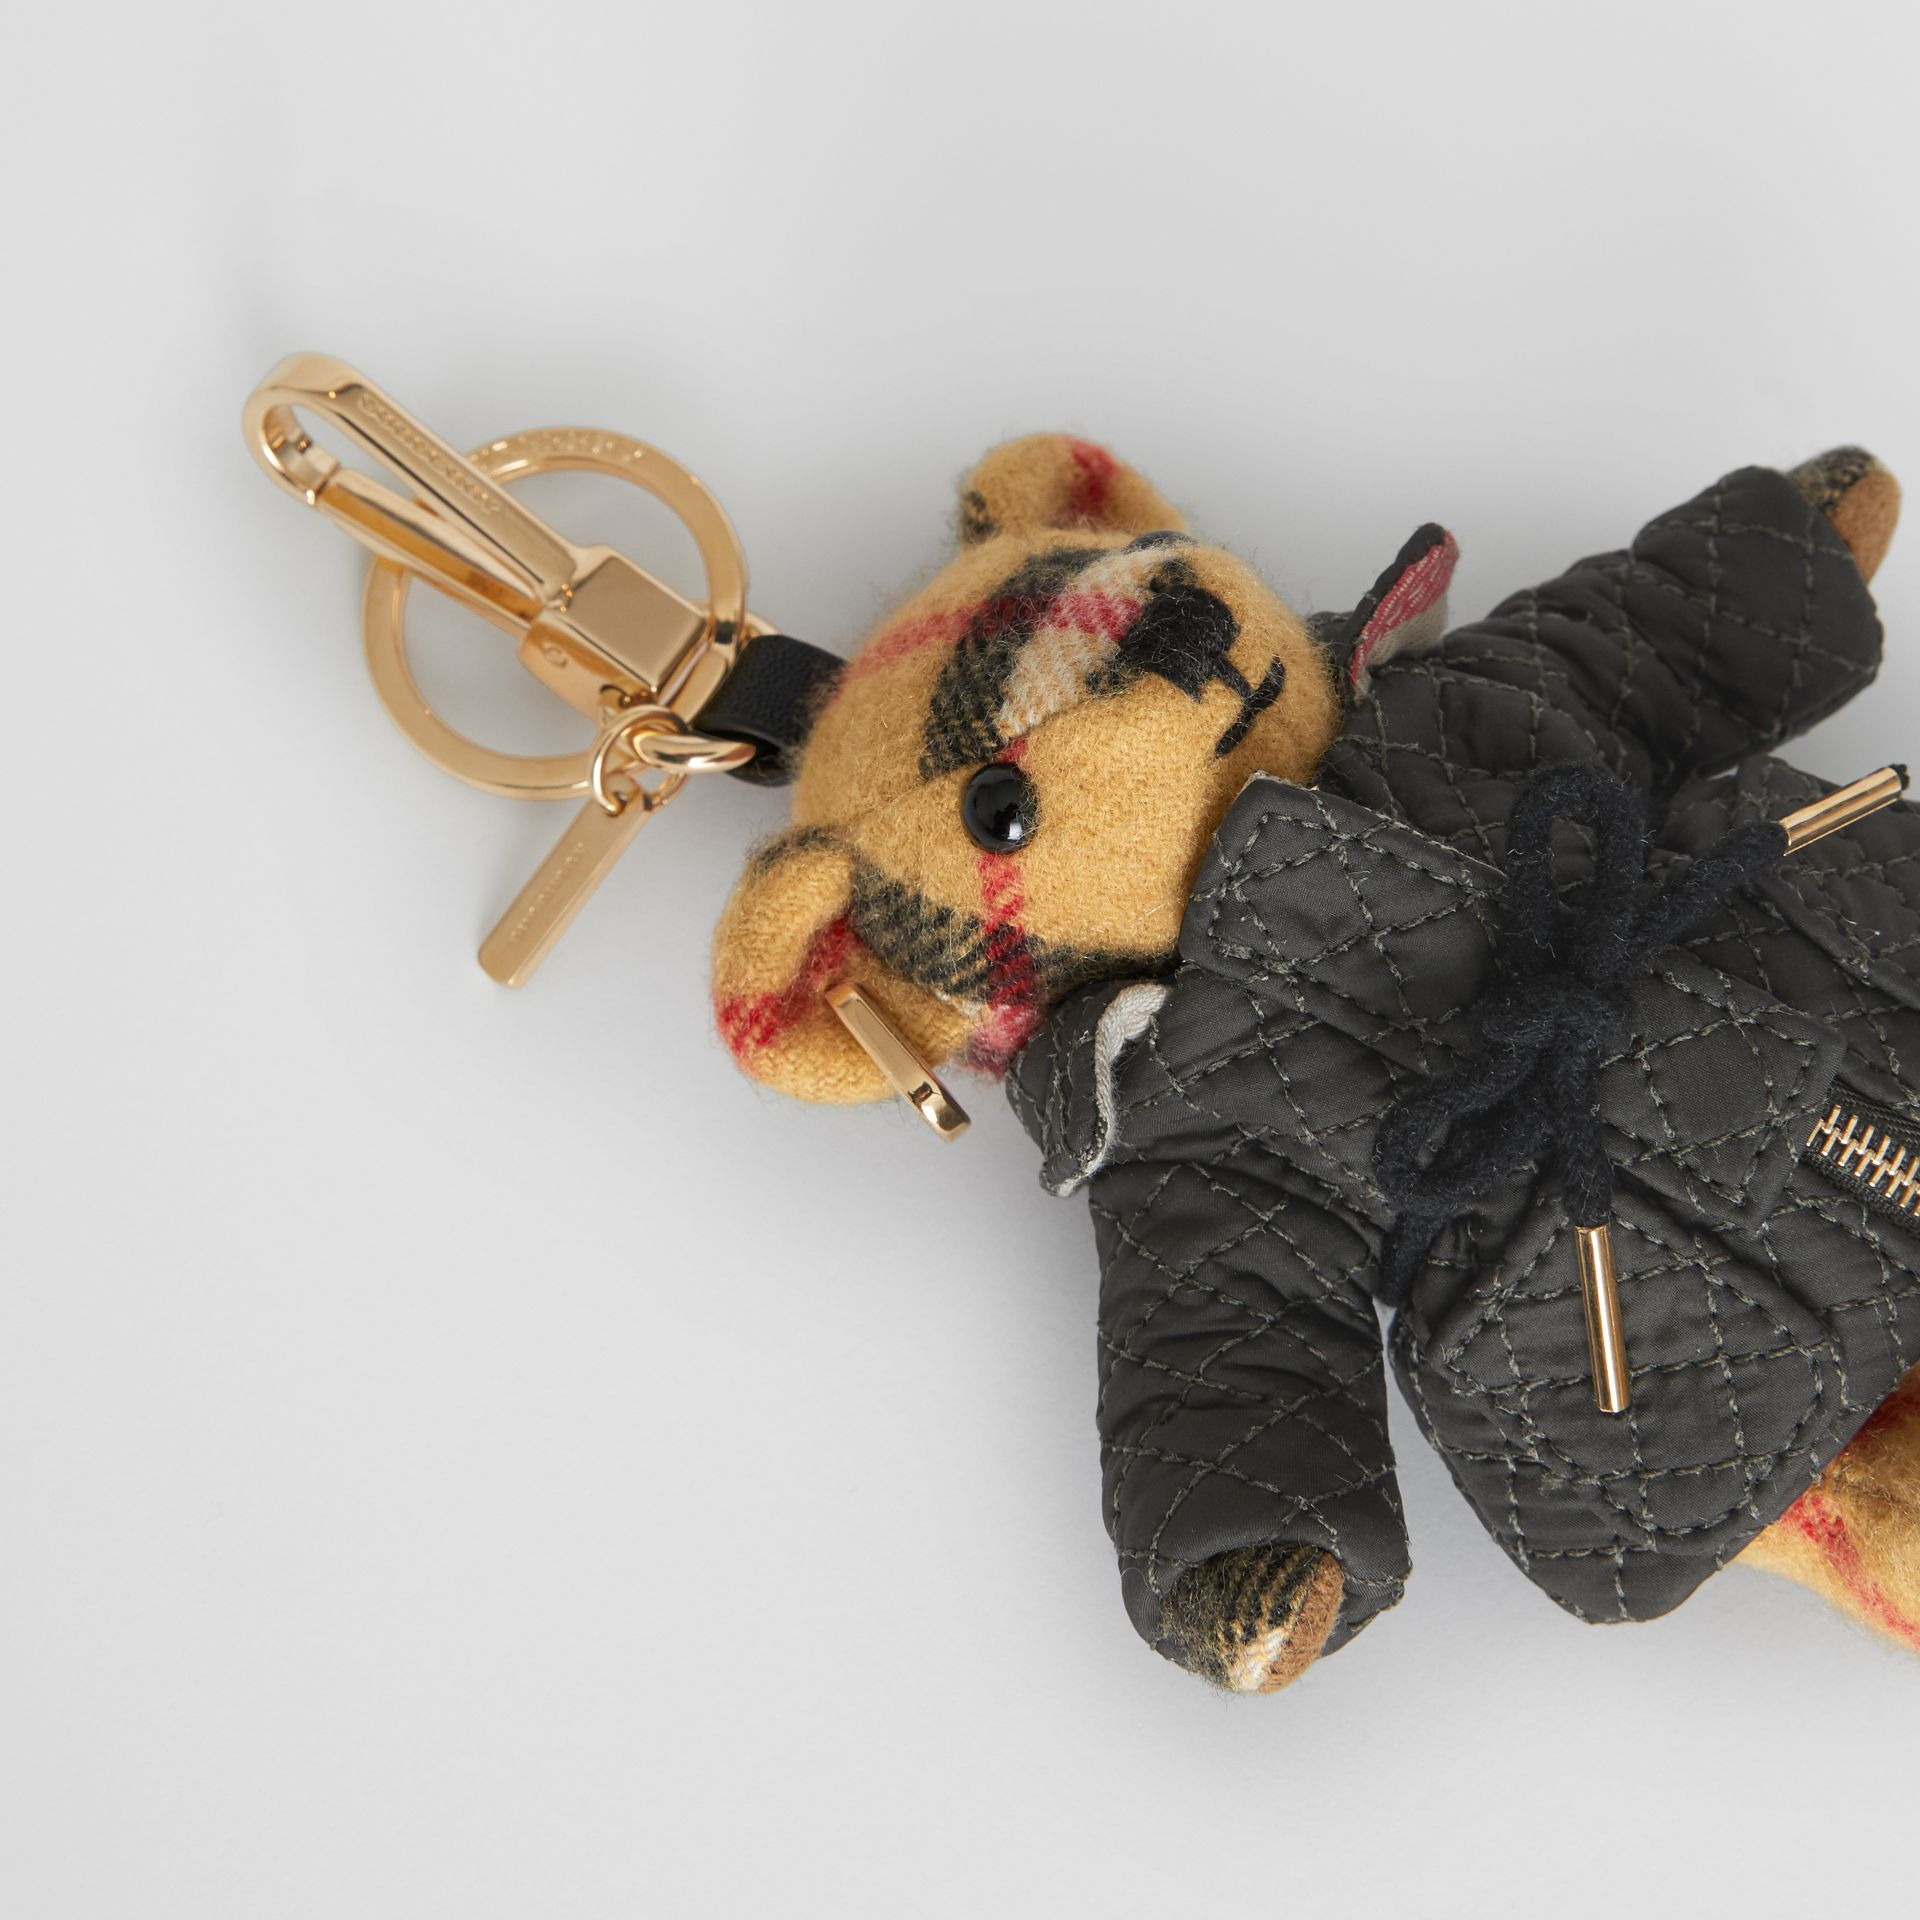 Bijou porte-clés Thomas Bear avec veste matelassée (Jaune Antique) | Burberry - photo de la galerie 1